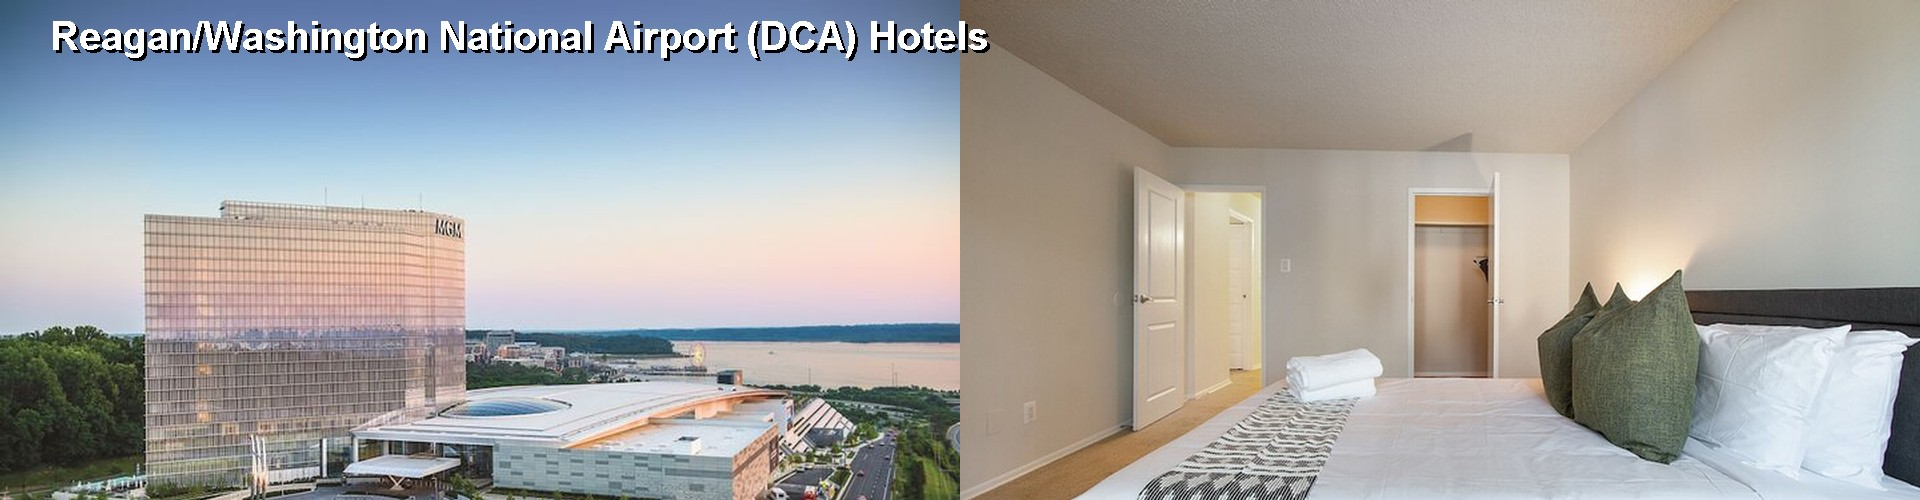 5 Best Hotels near Reagan/Washington National Airport (DCA)